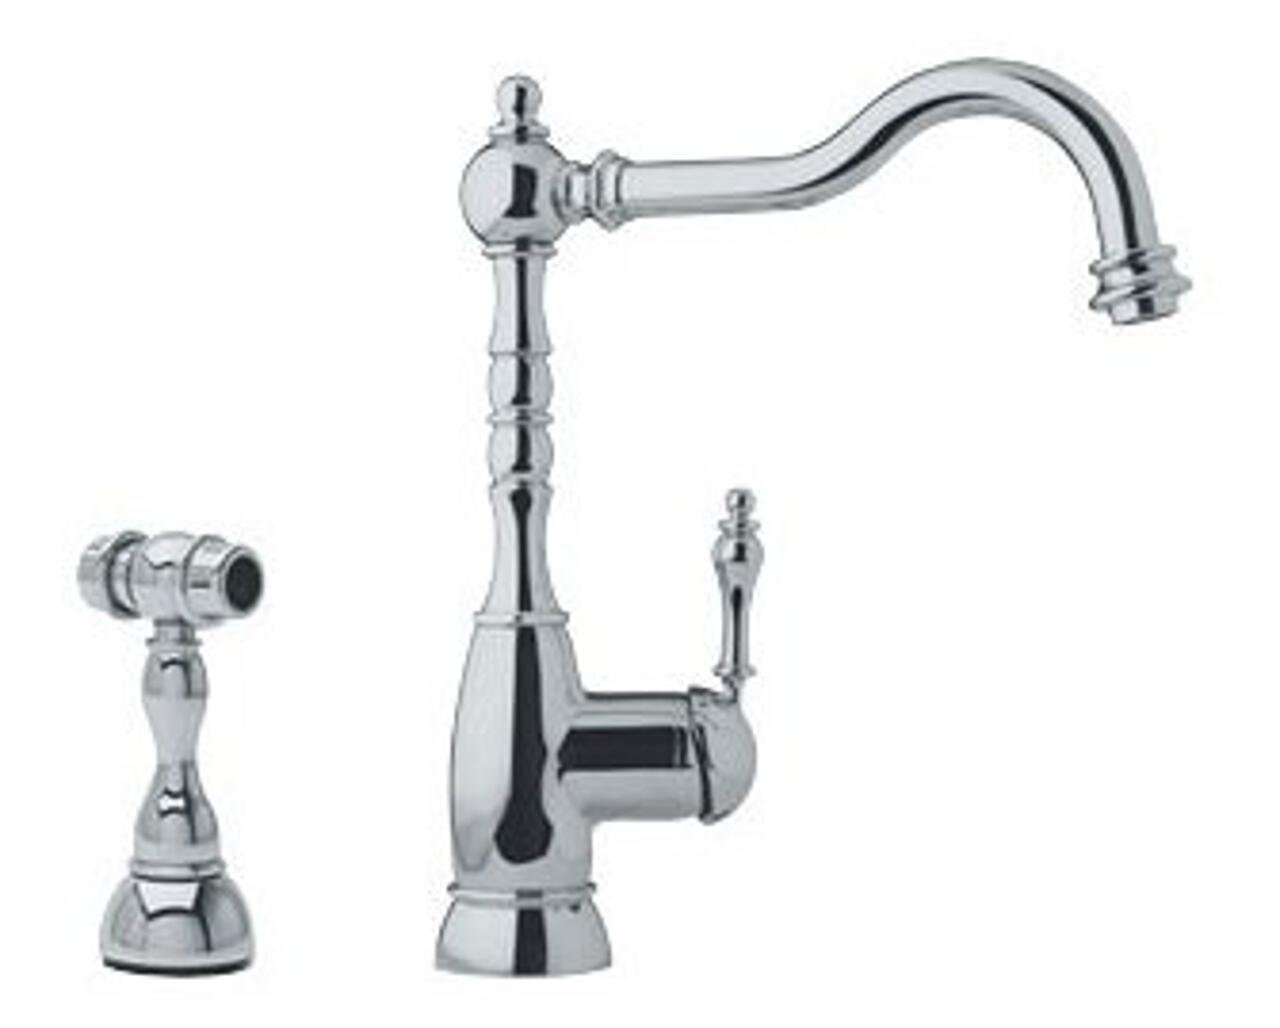 closet canada htm residential frr hole water faucets franke faucet kitchen item kitchener etobicoke single the